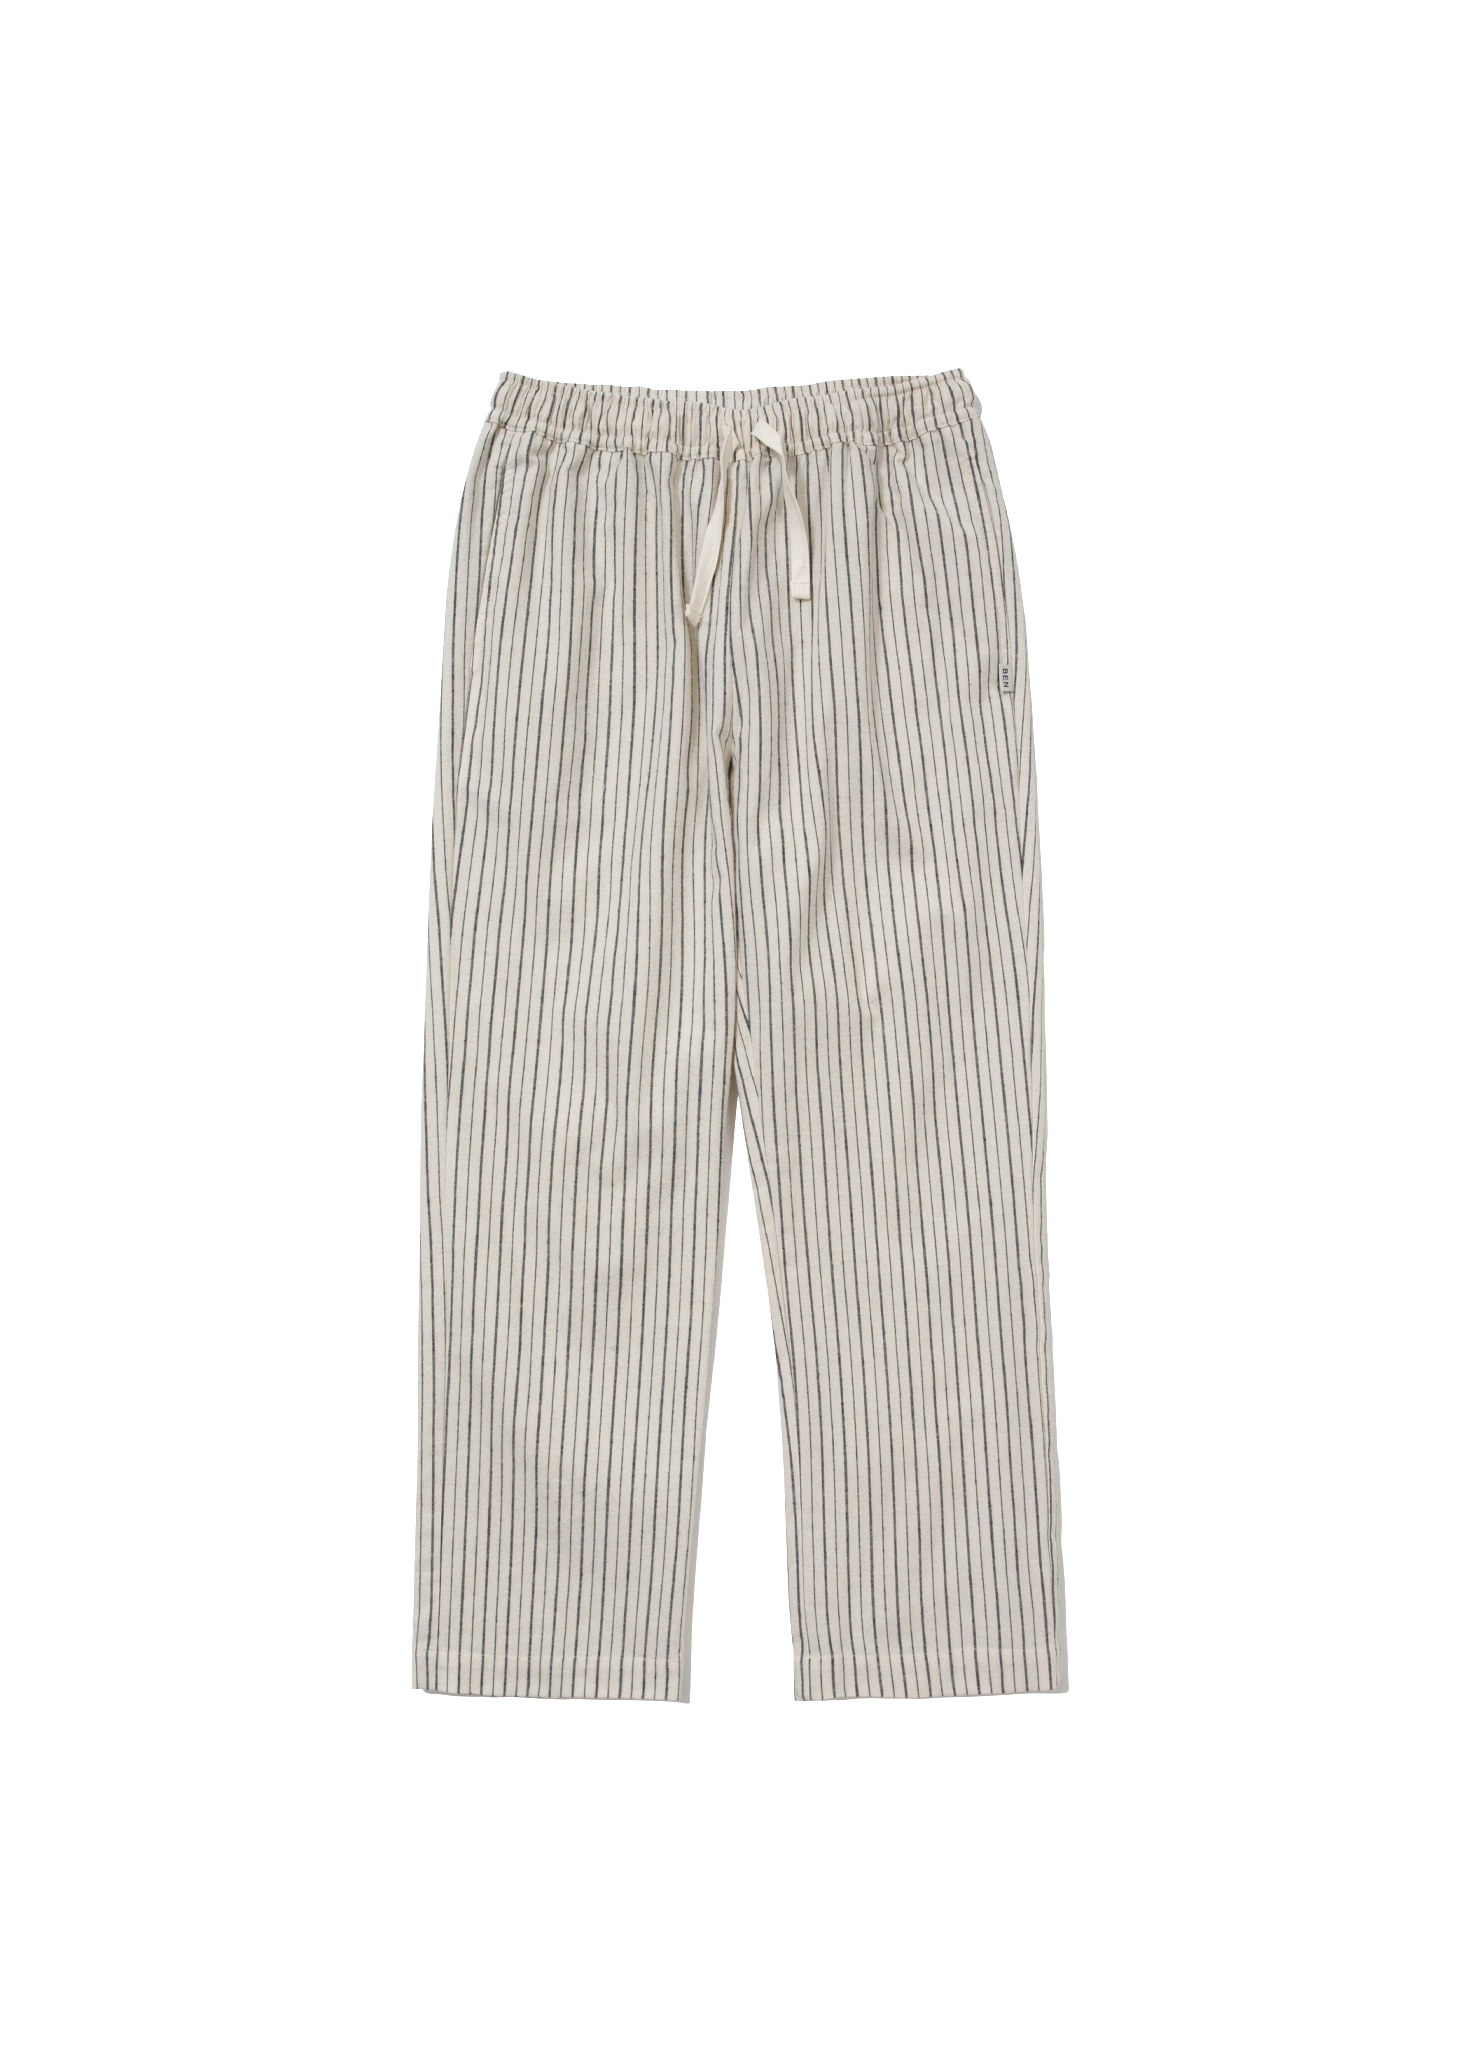 ben Peach Stripe Pajama Pants